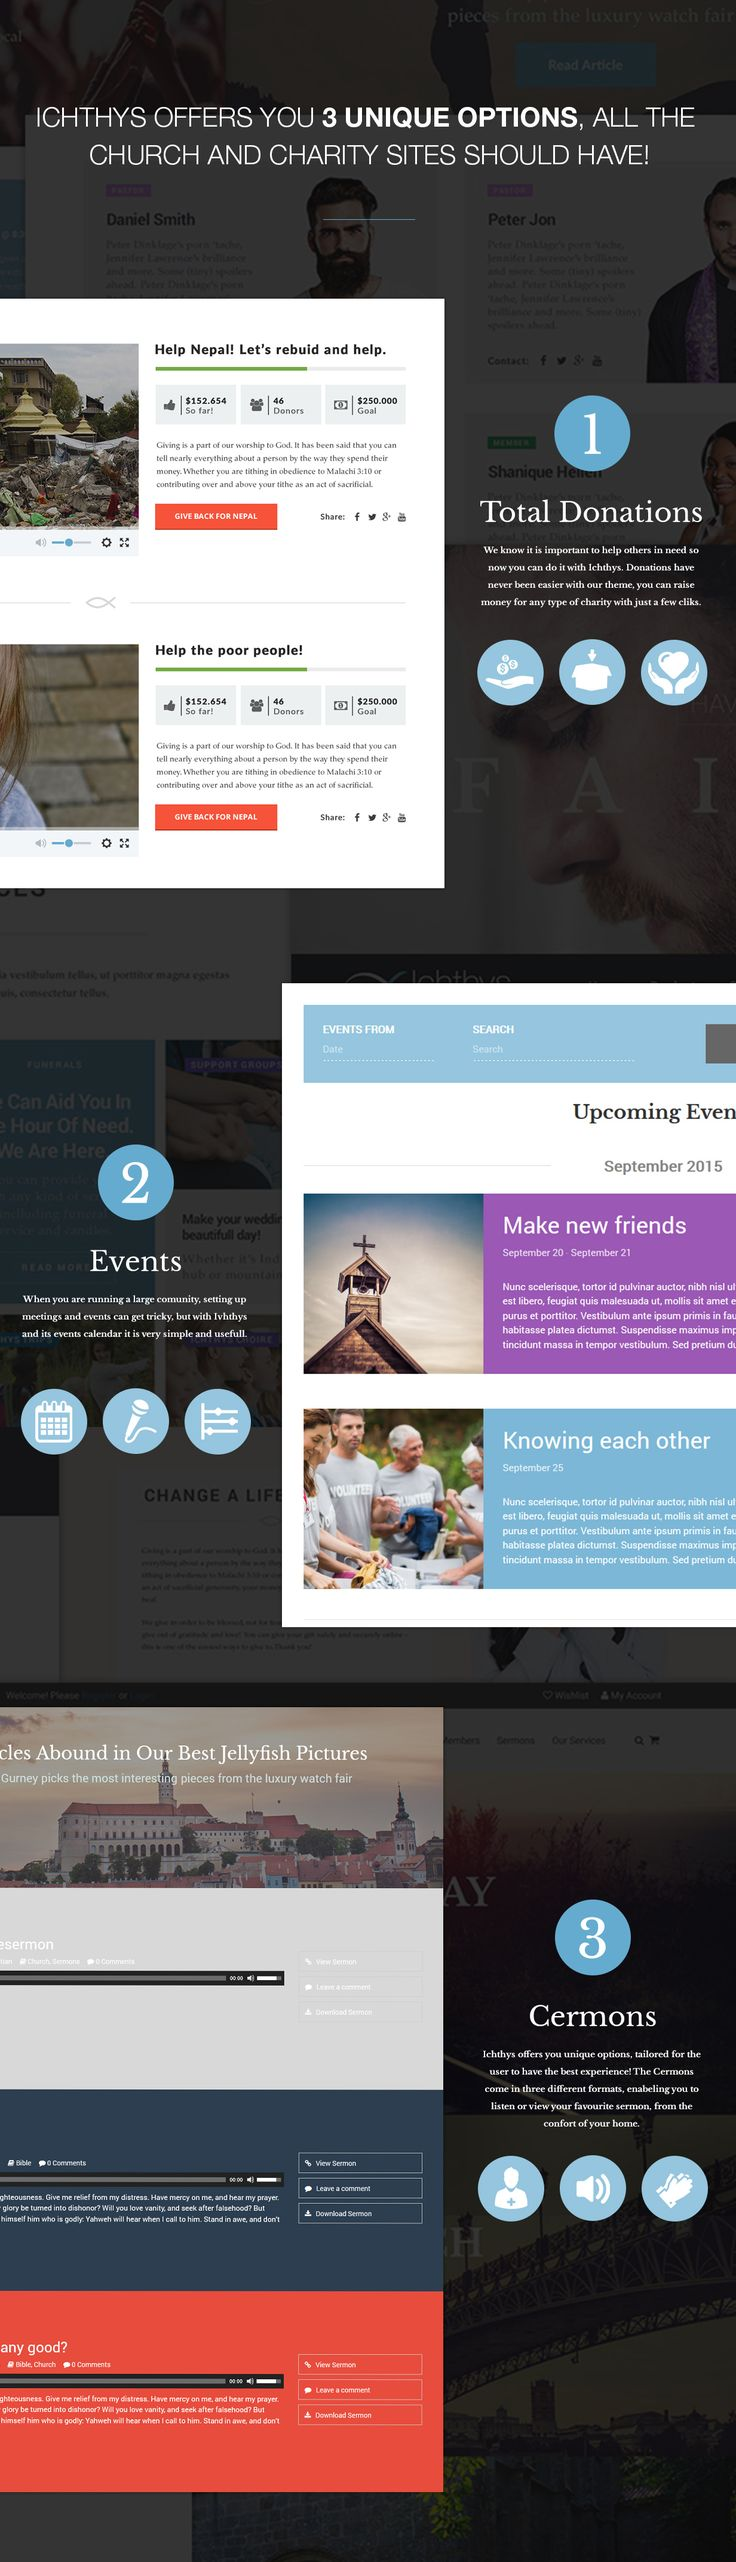 Ichthys - Church / Events / Religion / Donation / Nonprofit / Sermon / Charity WordPress Theme by modeltheme